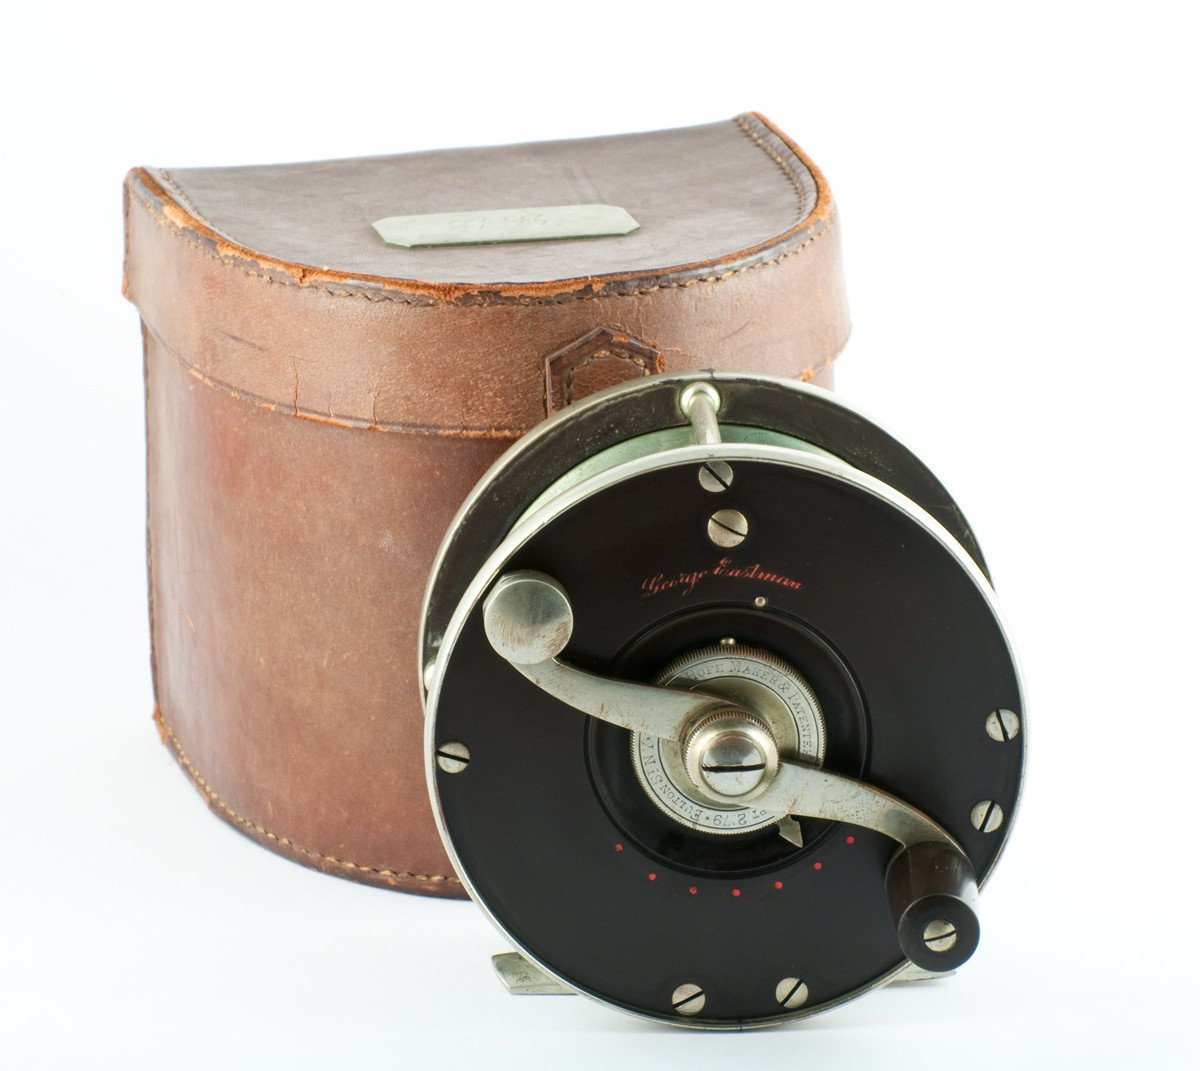 Vom Hofe, Edward - George Eastman's Model 423 Fly Reel - Size 4/0